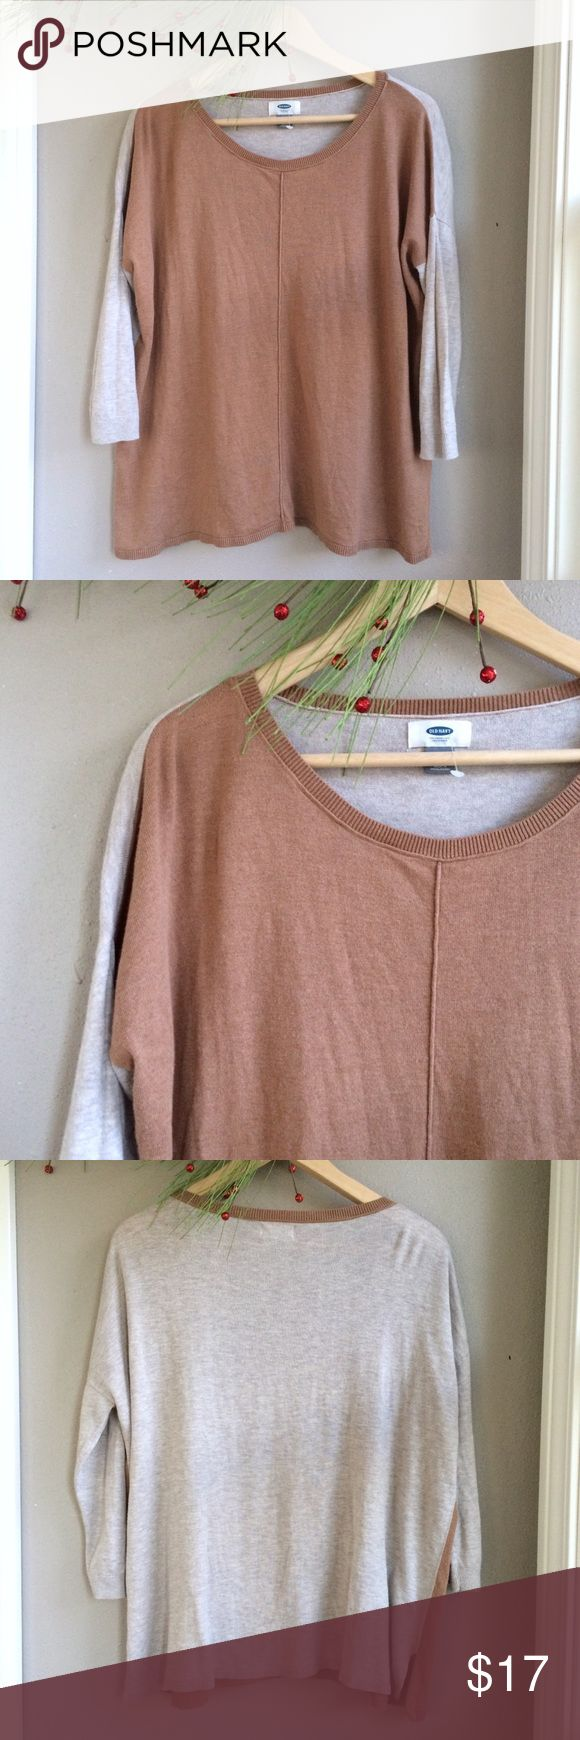 L 🆕 Old Navy Sweater L 🆕 Old Navy Sweater. Camel paneled front and neckline trim, oatmeal back and sleeves. Lightweight. Perfect layering piece for cooler temps. Love with boyfriend jeans and ankle boots. New with out tag. Bundle for additional discounts and seller offers. Old Navy Sweaters V-Necks